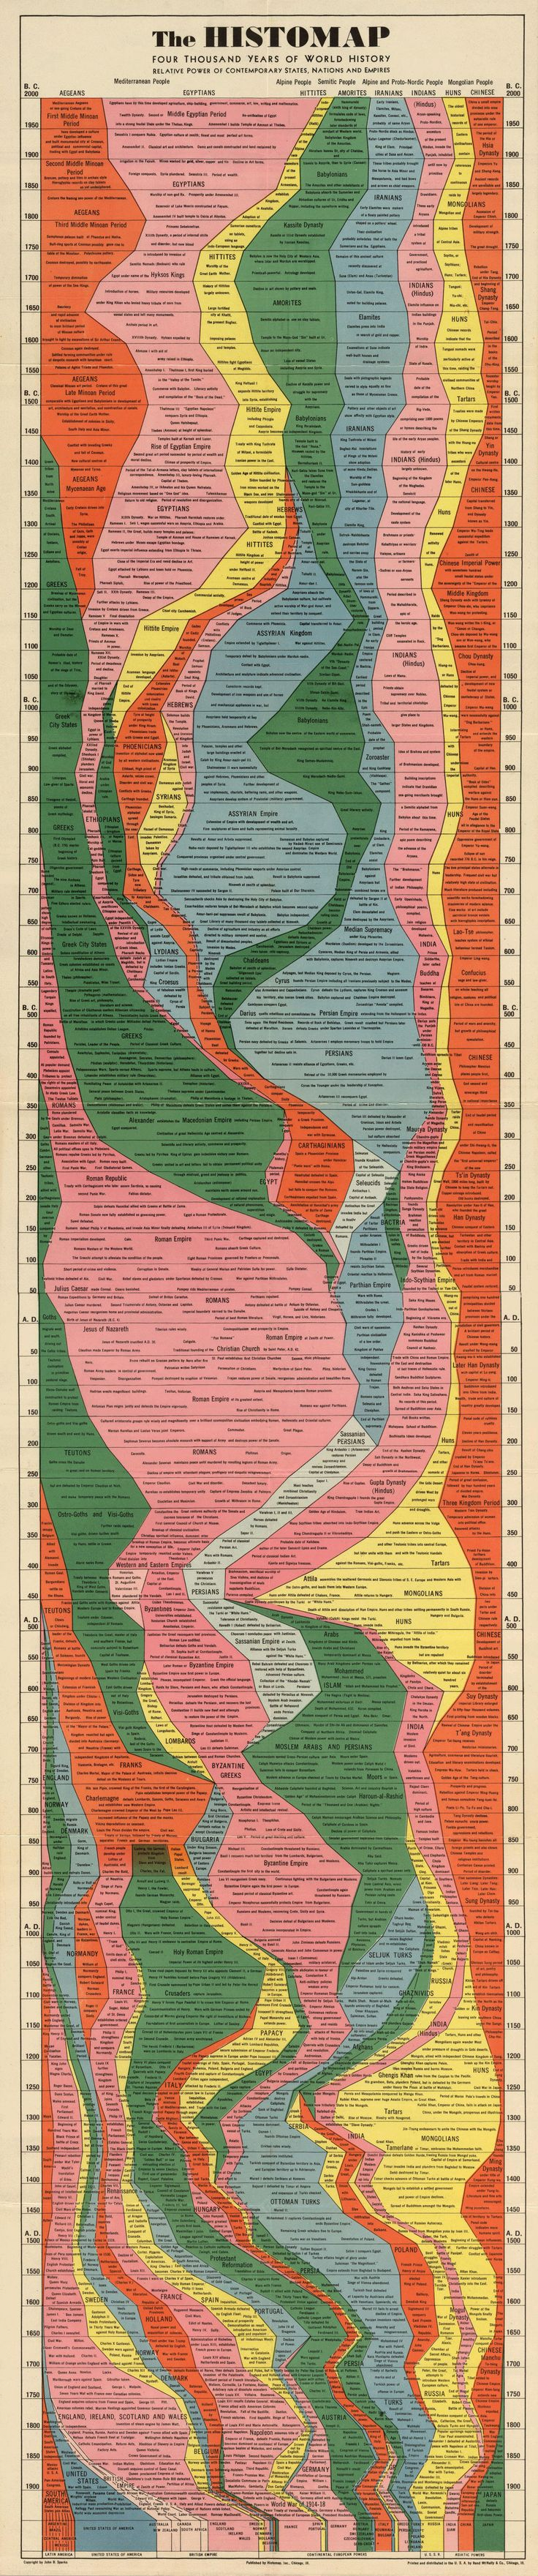 4,000 Years of World History in One Epic Chart «TwistedSifter